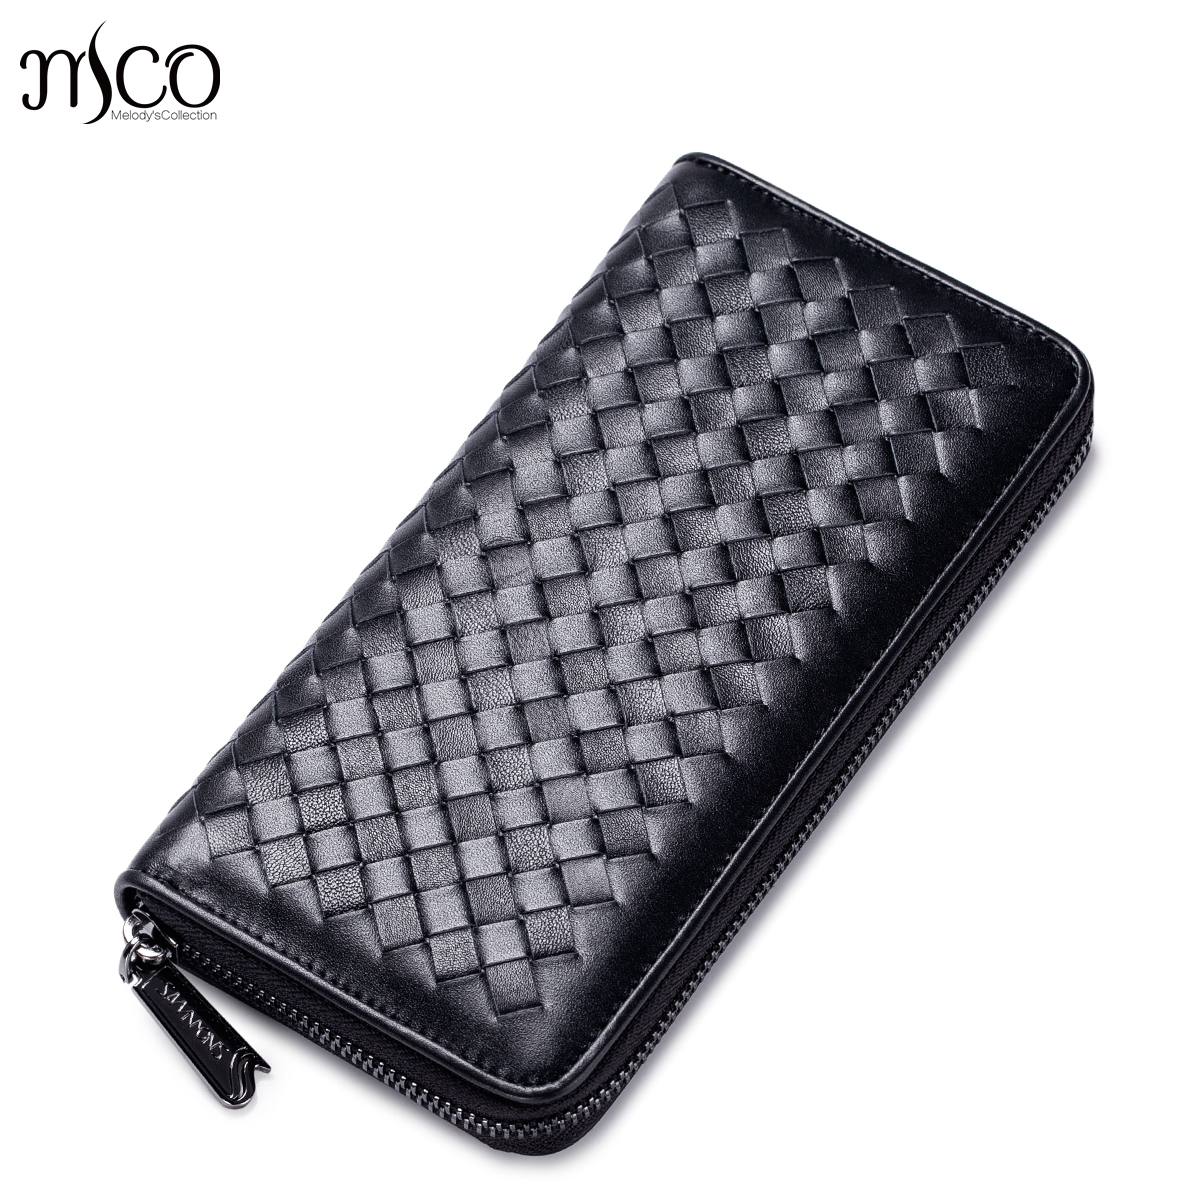 Men Genuine Leather Wallets Fashion Knitting Clutch Head Layer Cowhide Pure manual weaving long Zipper purse Male Money Clips long wallets for business men luxurious 100% cowhide genuine leather vintage fashion zipper men clutch purses 2017 new arrivals